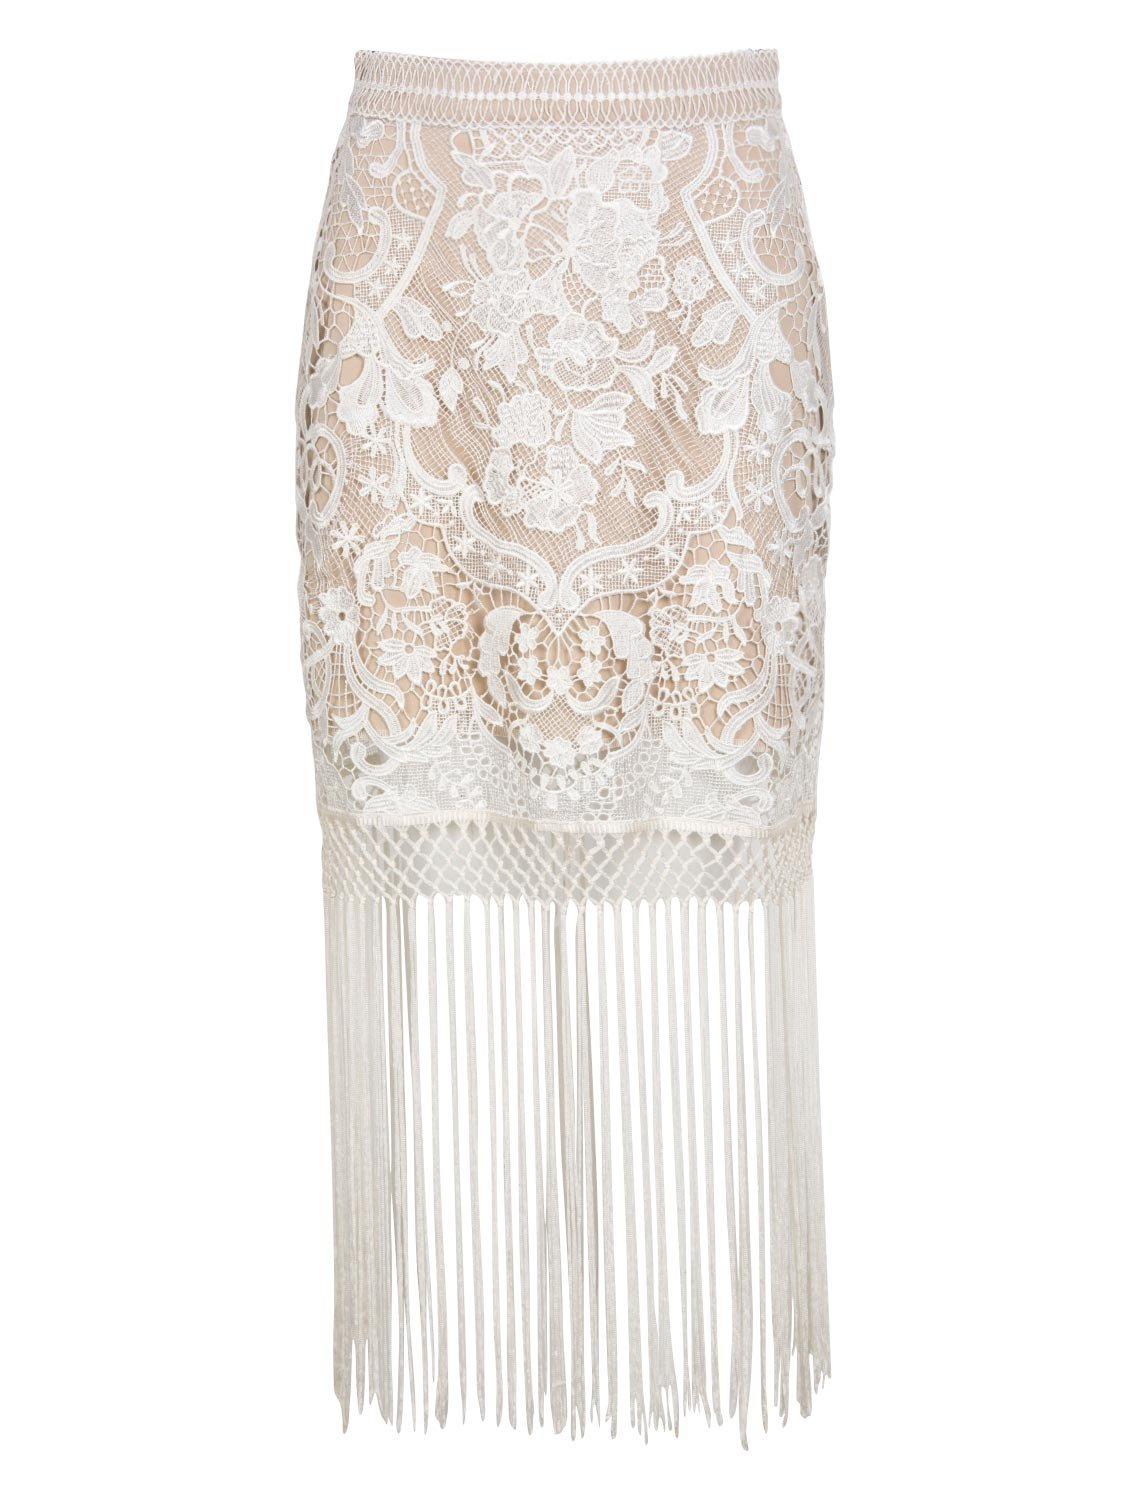 Choies Women White High Waist Tassel Crochet Mesh Lace Floral Midi Pencil Skirt XL